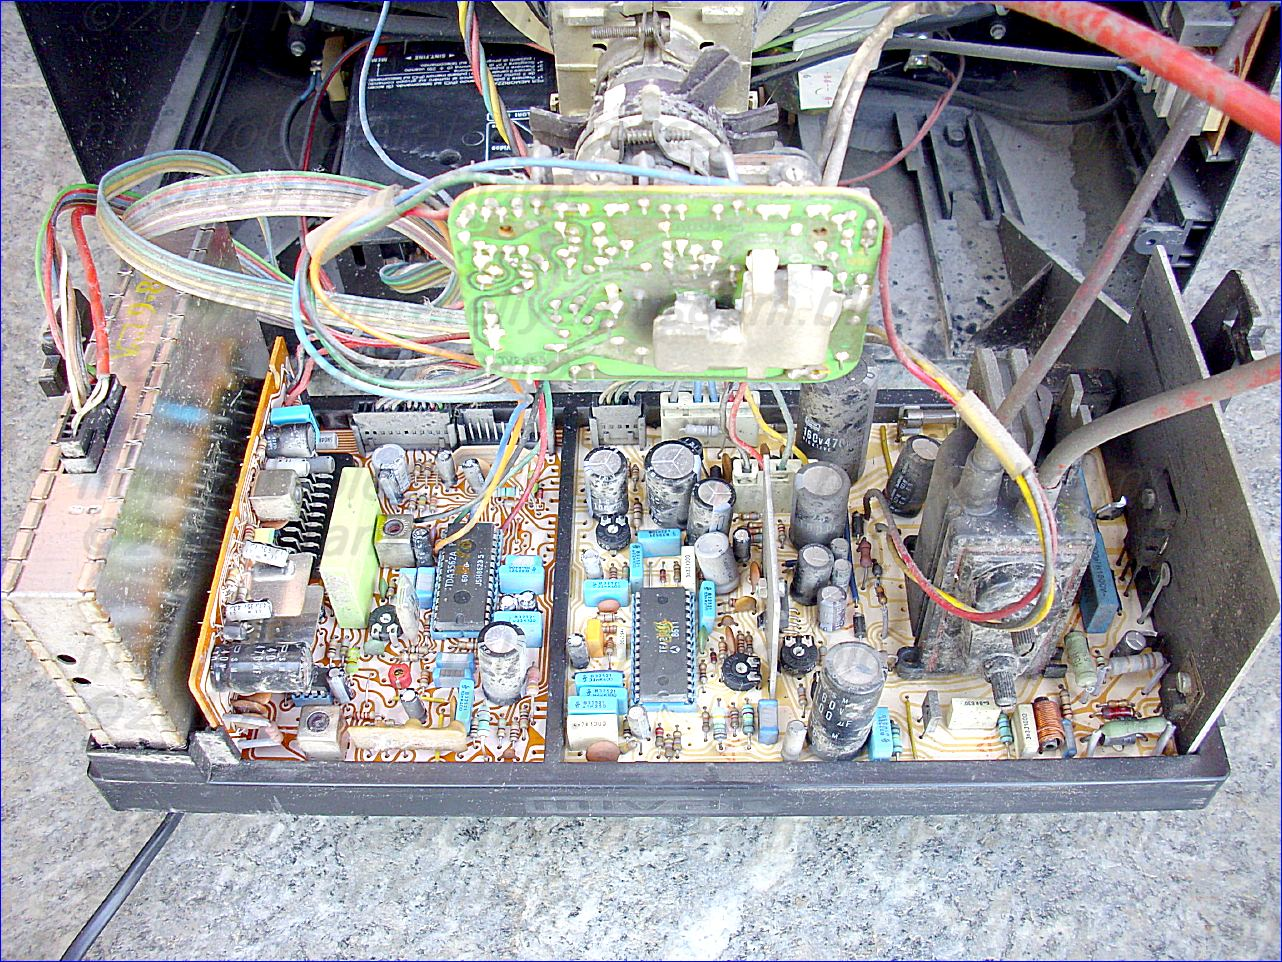 Obsolete Technology Tellye Mivar 16c3v Chassis Tv2962 2 Tv2965 Power Supply Schematic Furthermore Atx Diagram Is Switched Into The Second State And Therefore At A Time In Which Picture Signal Already Controls Beam Currents This Way Response Of